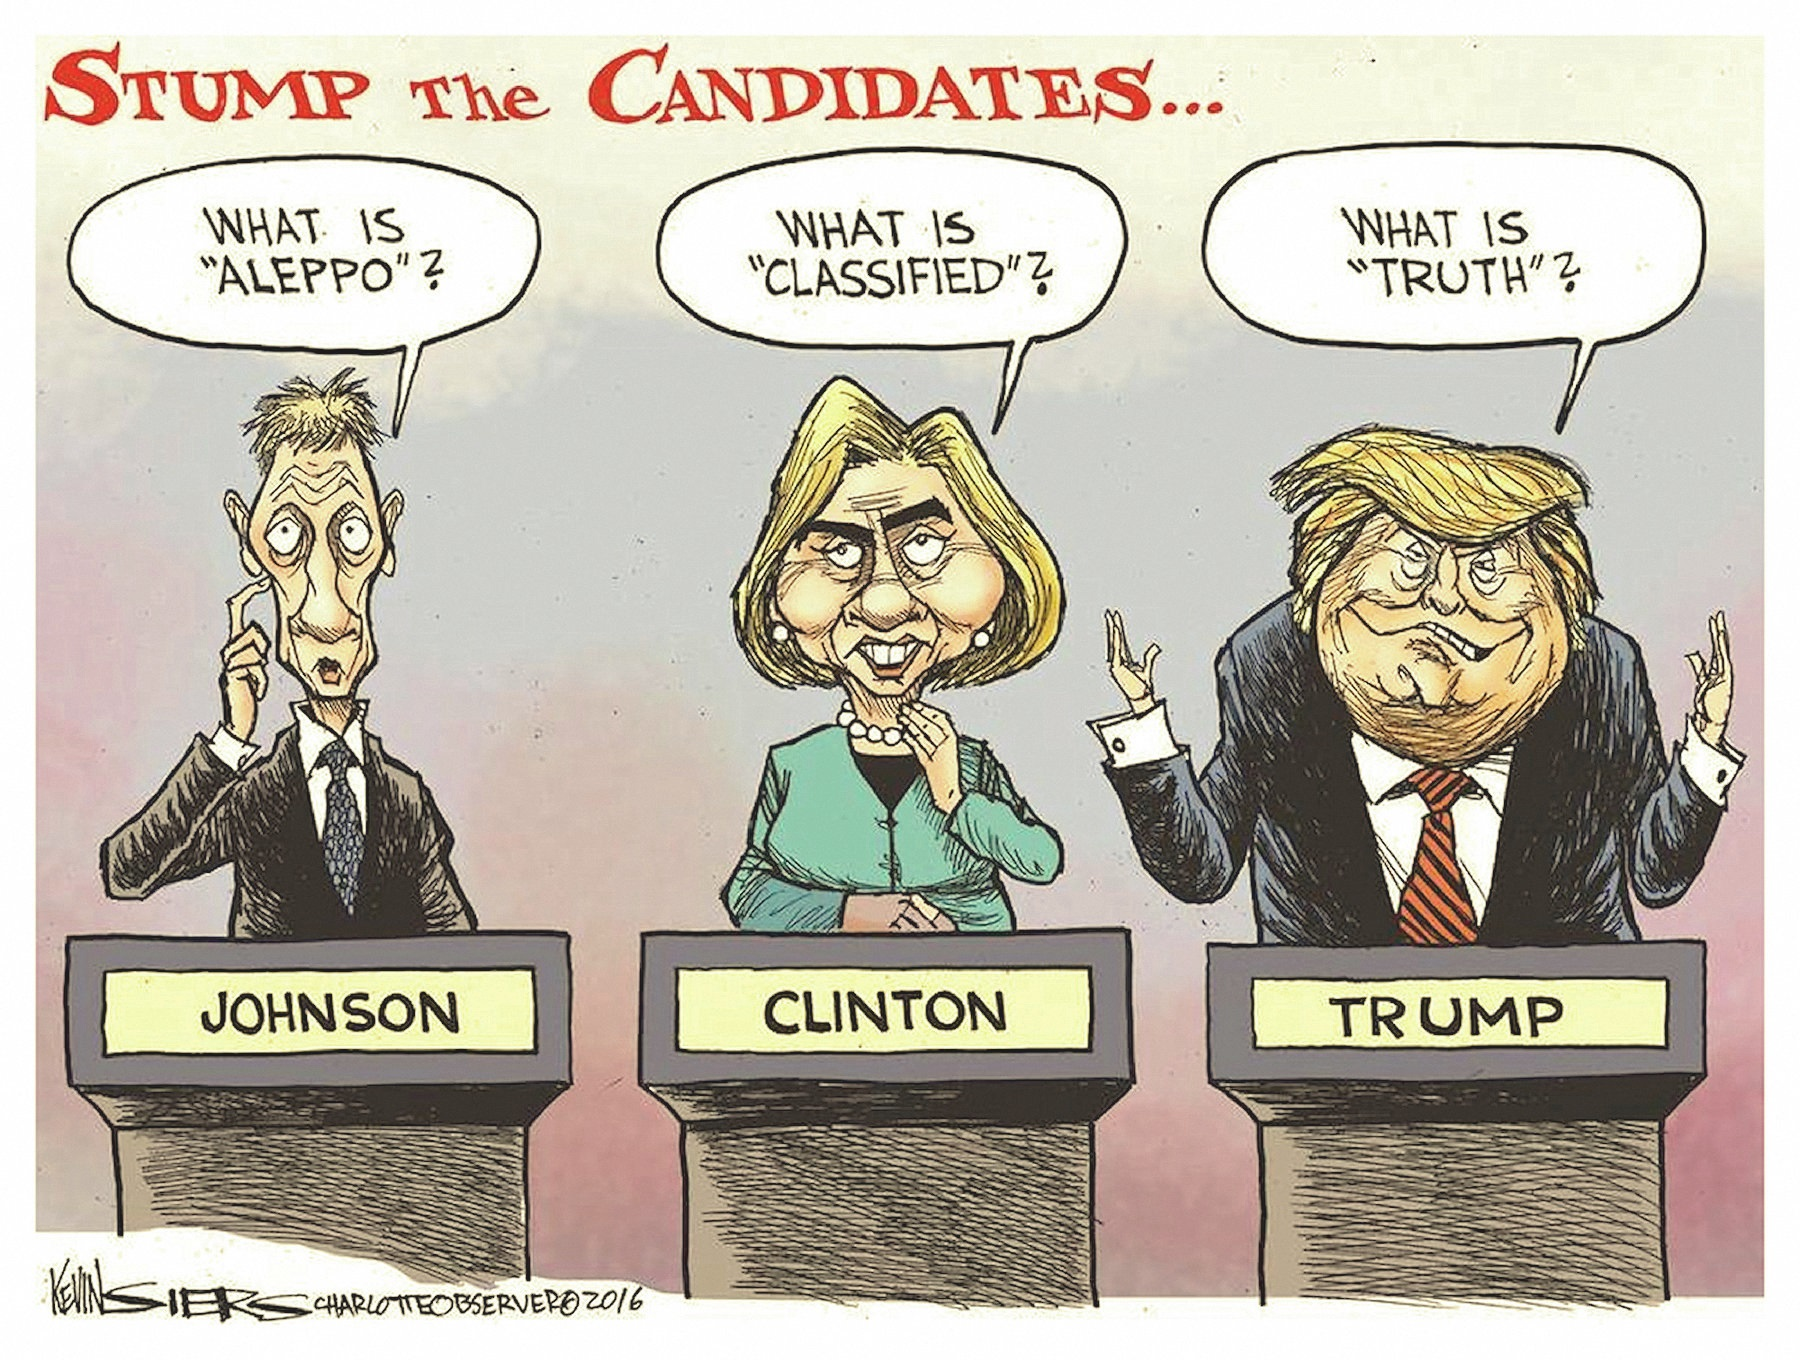 00-kevin-siers-stump-the-candidates-2016